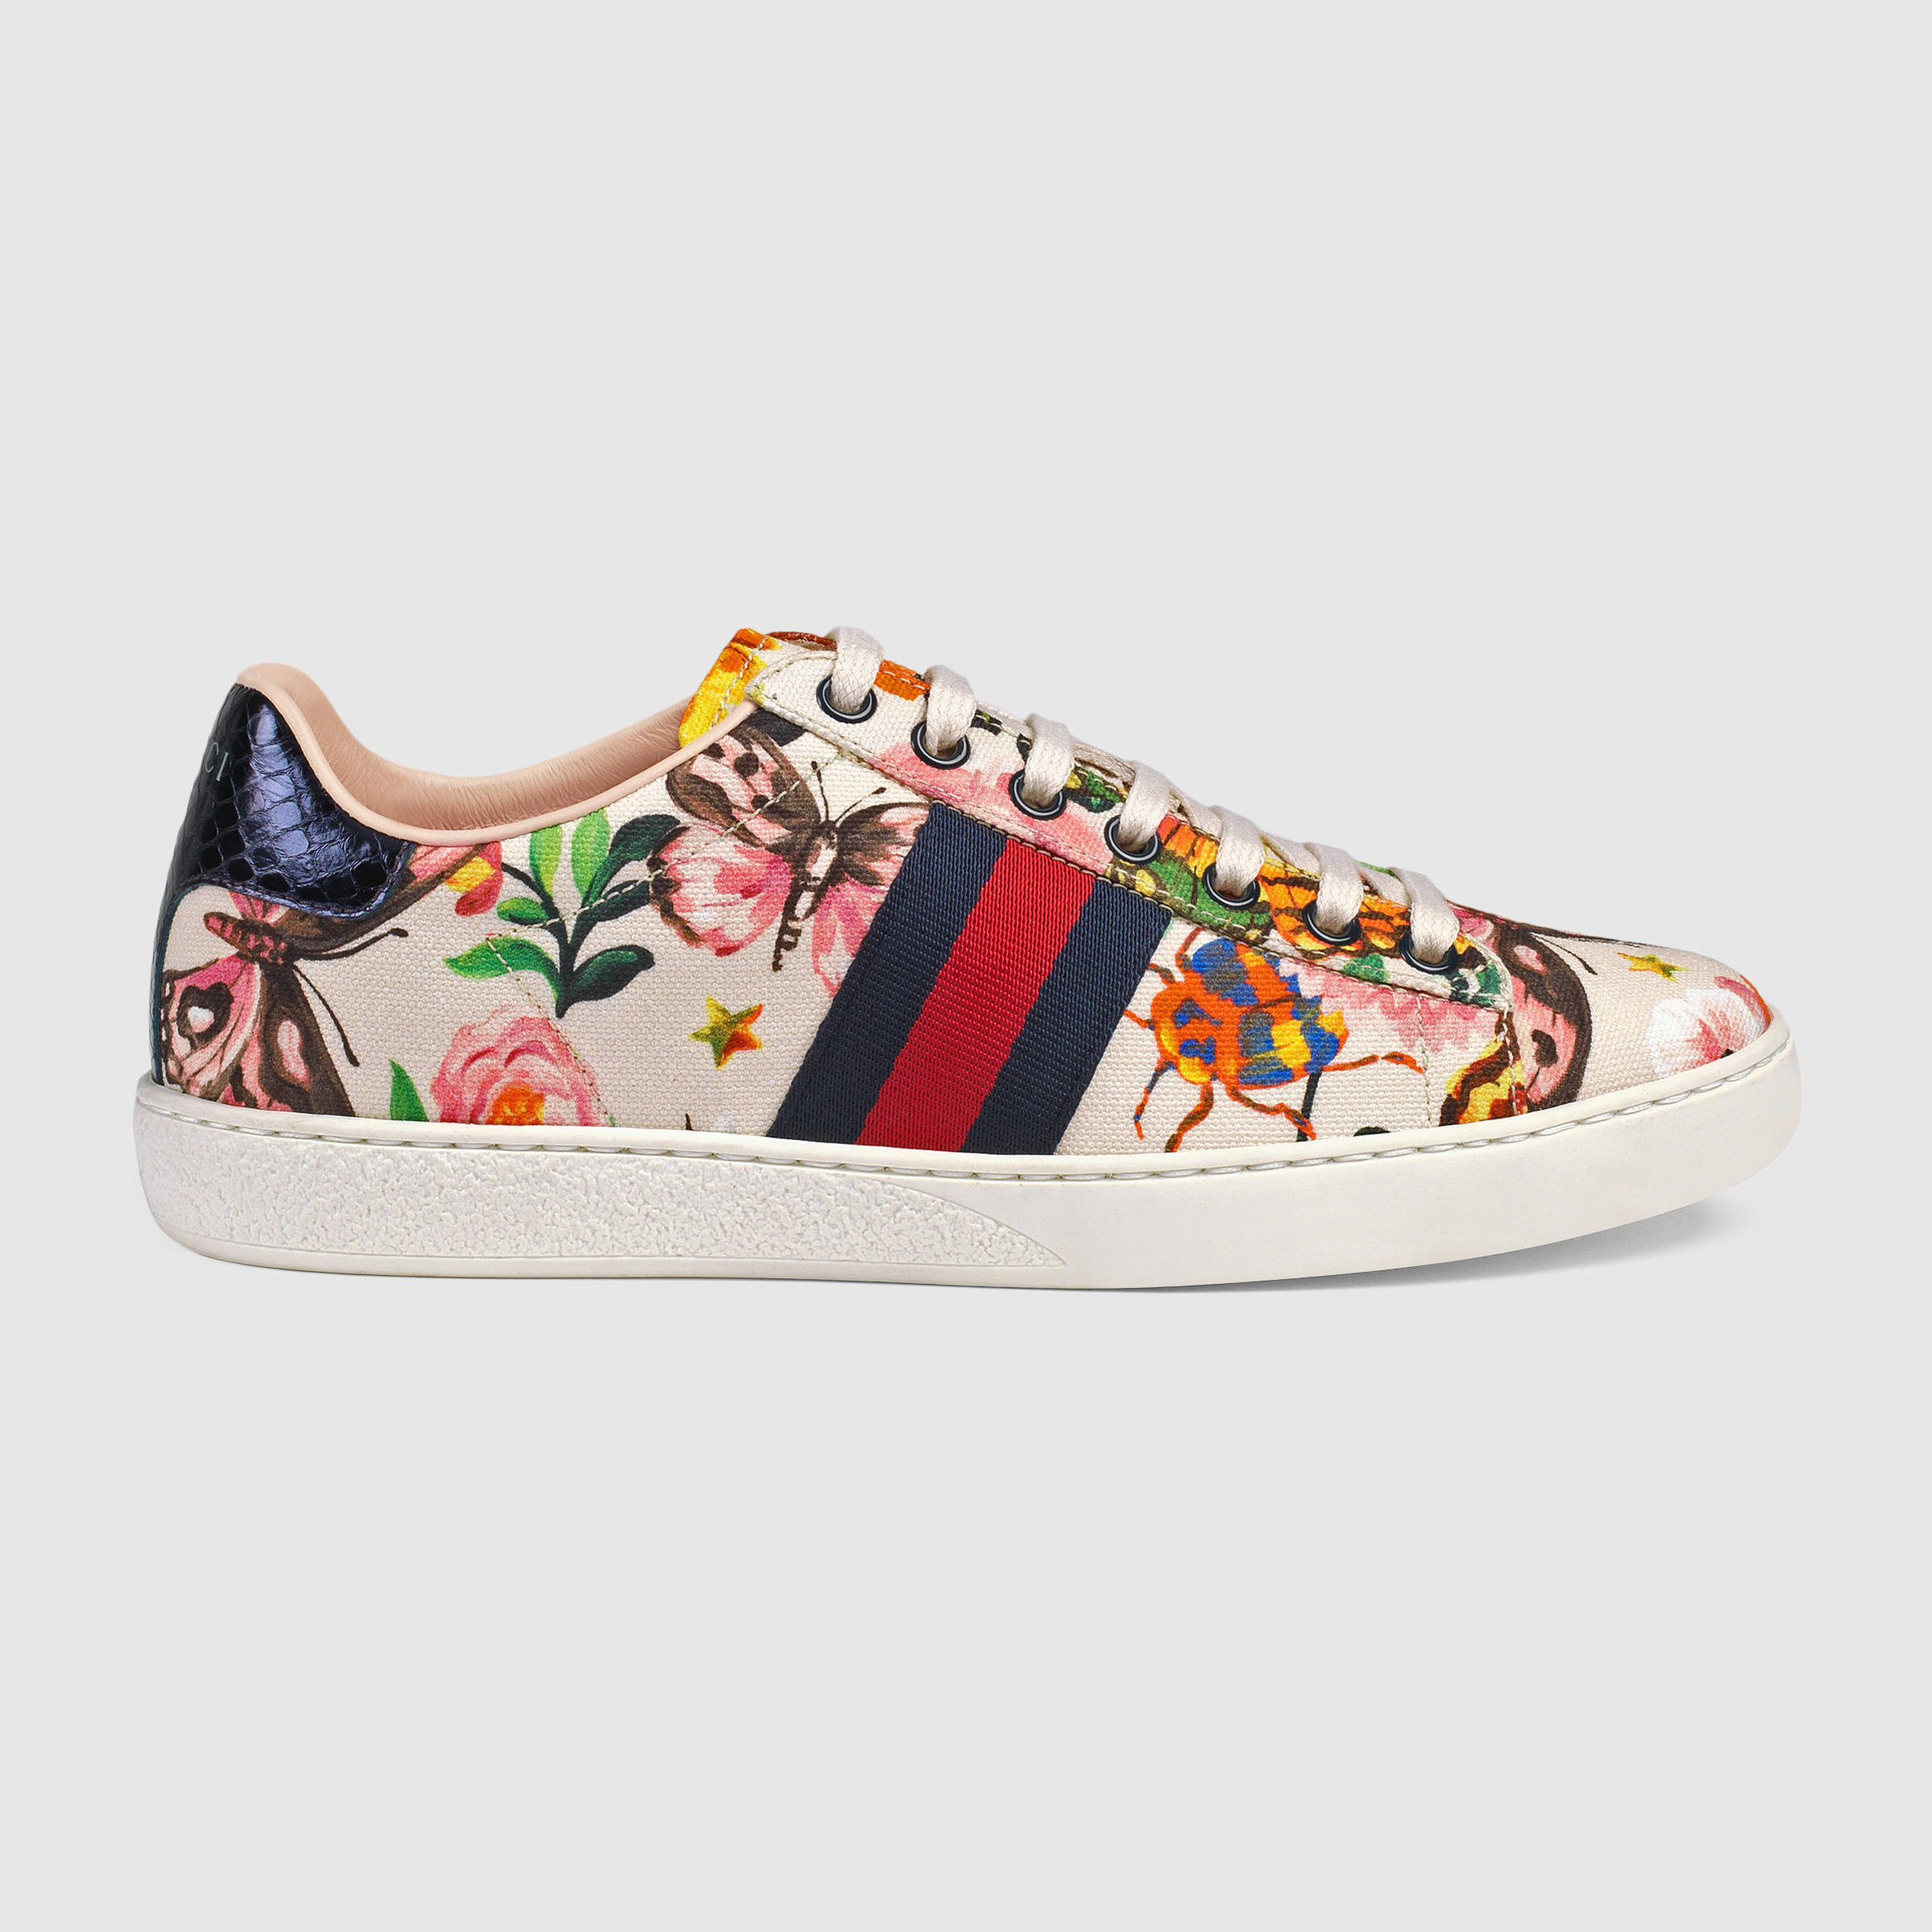 323793975ae Lyst - Gucci Garden Exclusive Ace Sneaker